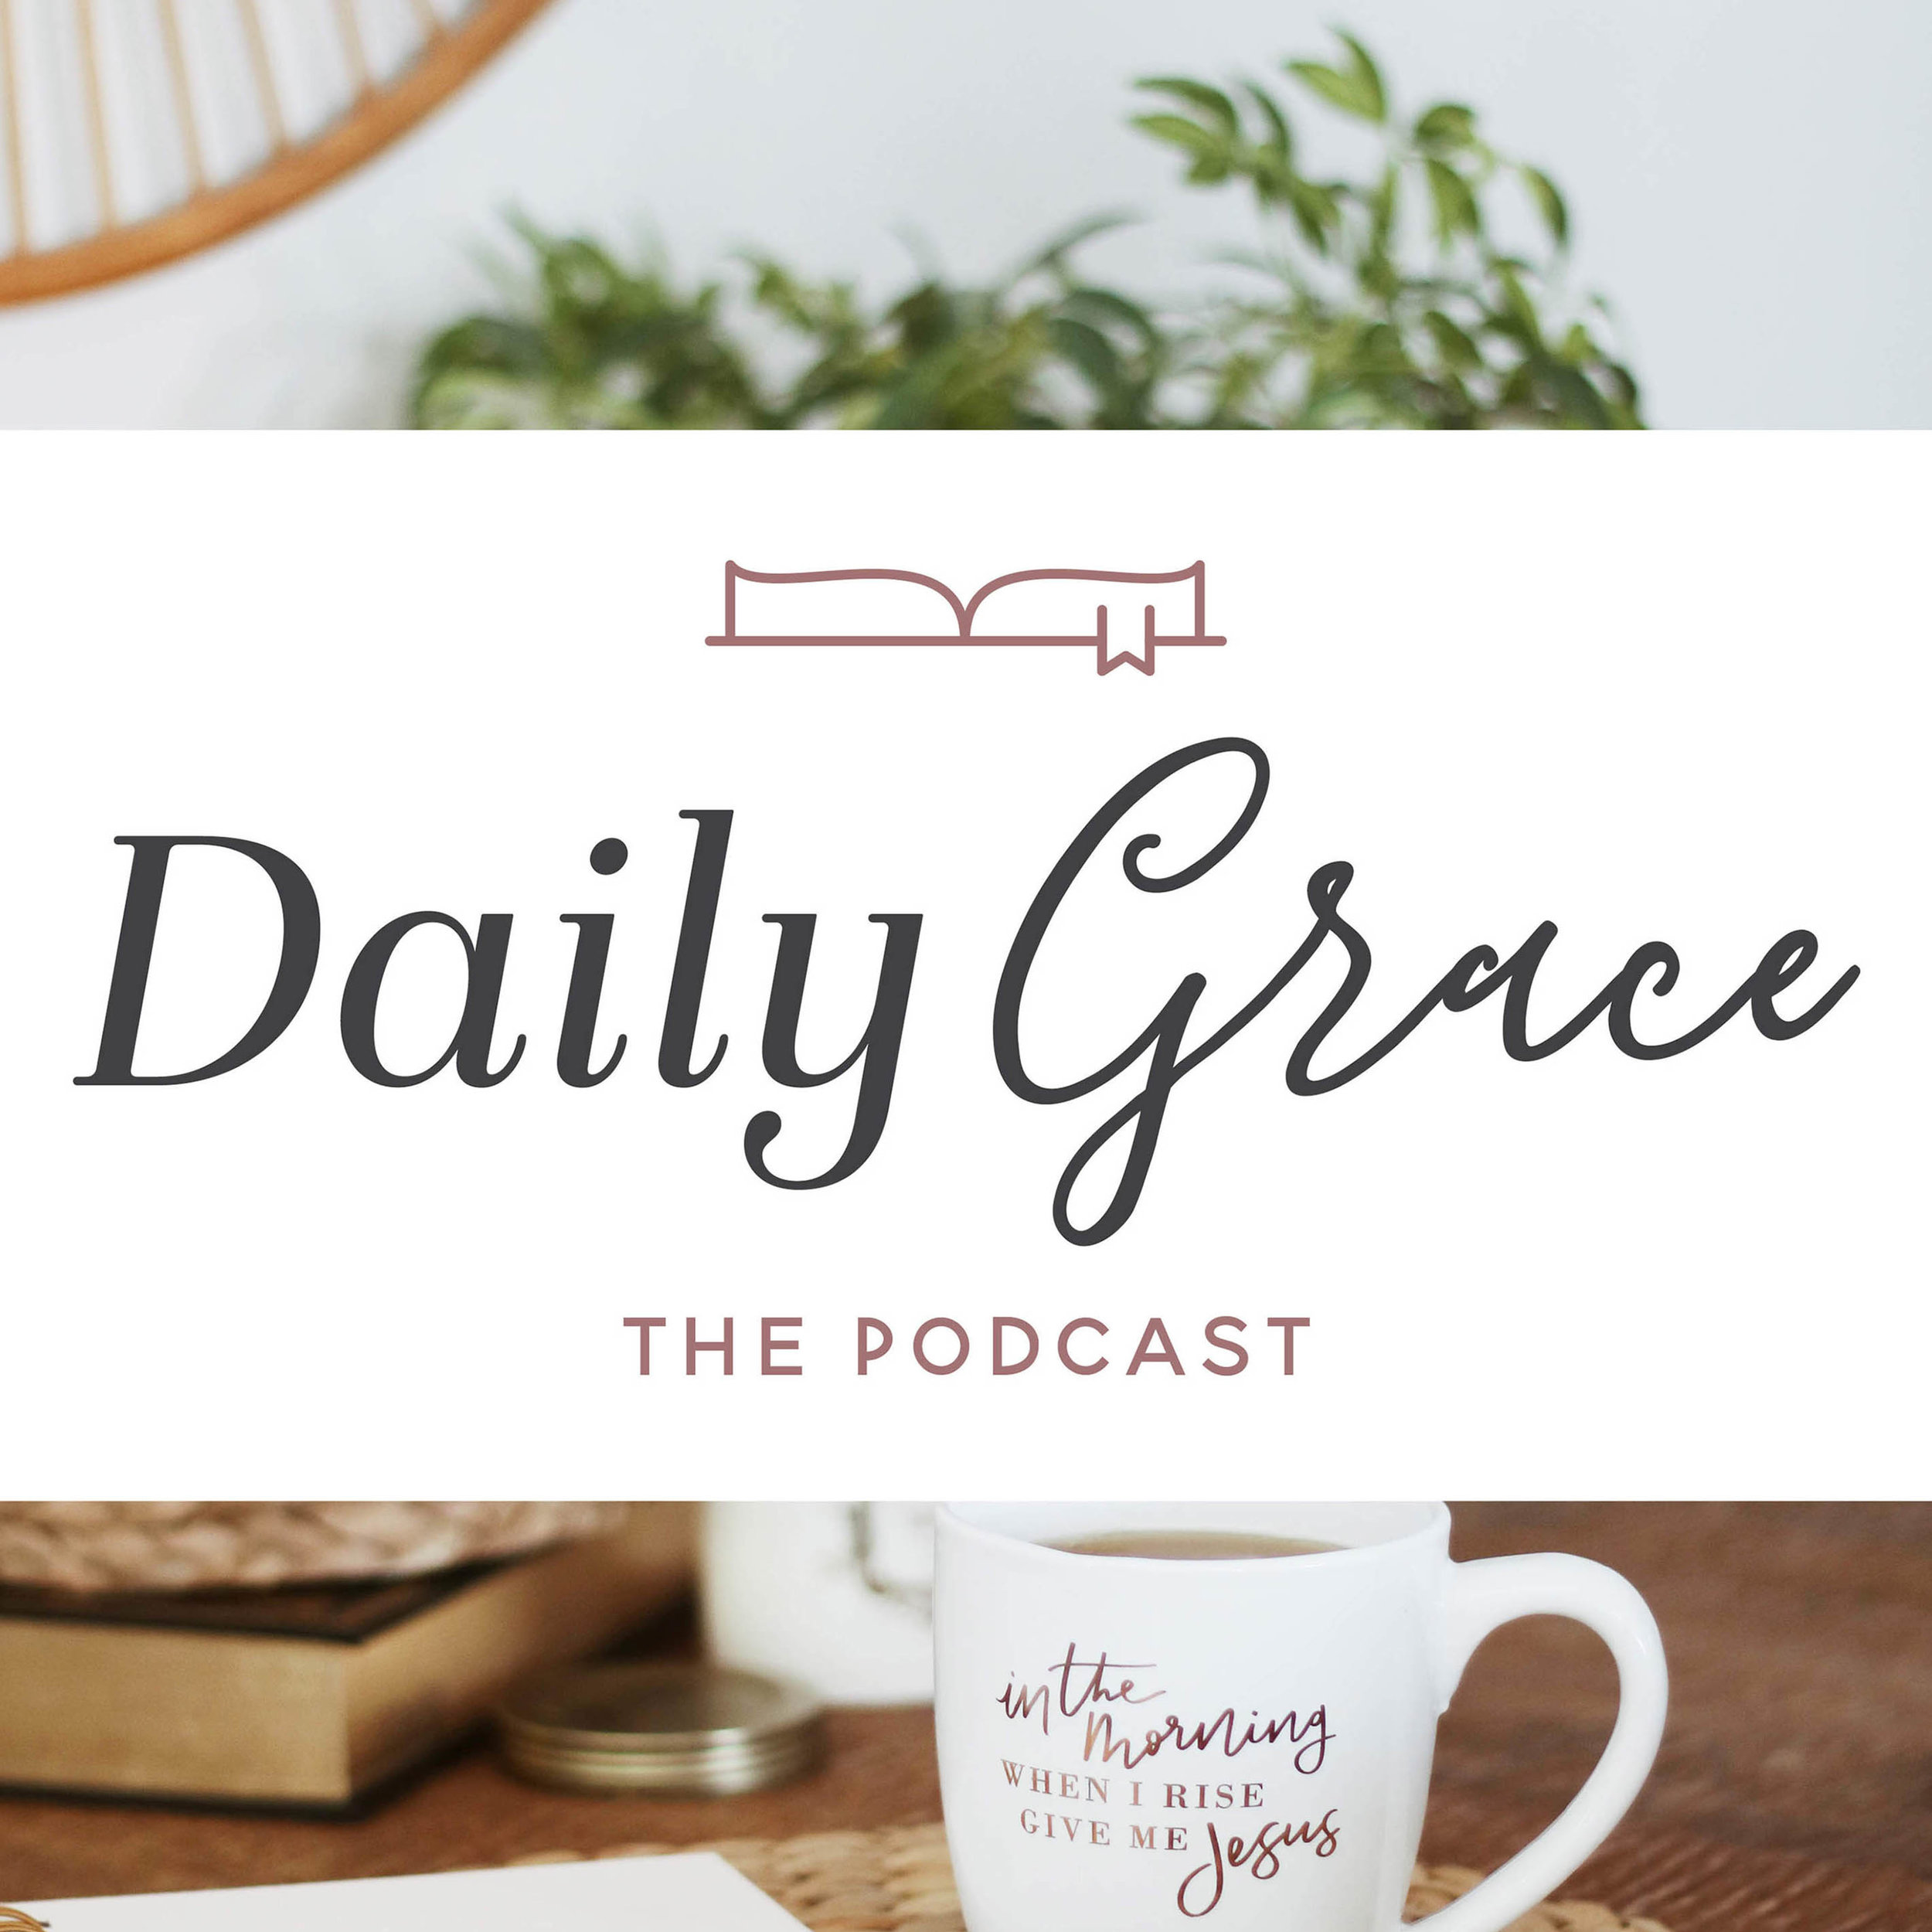 DAILY GRACE - On today's episode, we are joined by the ladies at Risen Motherhood! Emily Jensen and Laura Wifler are the co-founders of Risen Motherhood and co-hosts of the Risen Motherhood podcast. The RM ministry helps women understand that the gospel is for every mom and the gospel matters for everyday life. They encourage moms to allow the resurrection of Jesus to transform their motherhood because it can!